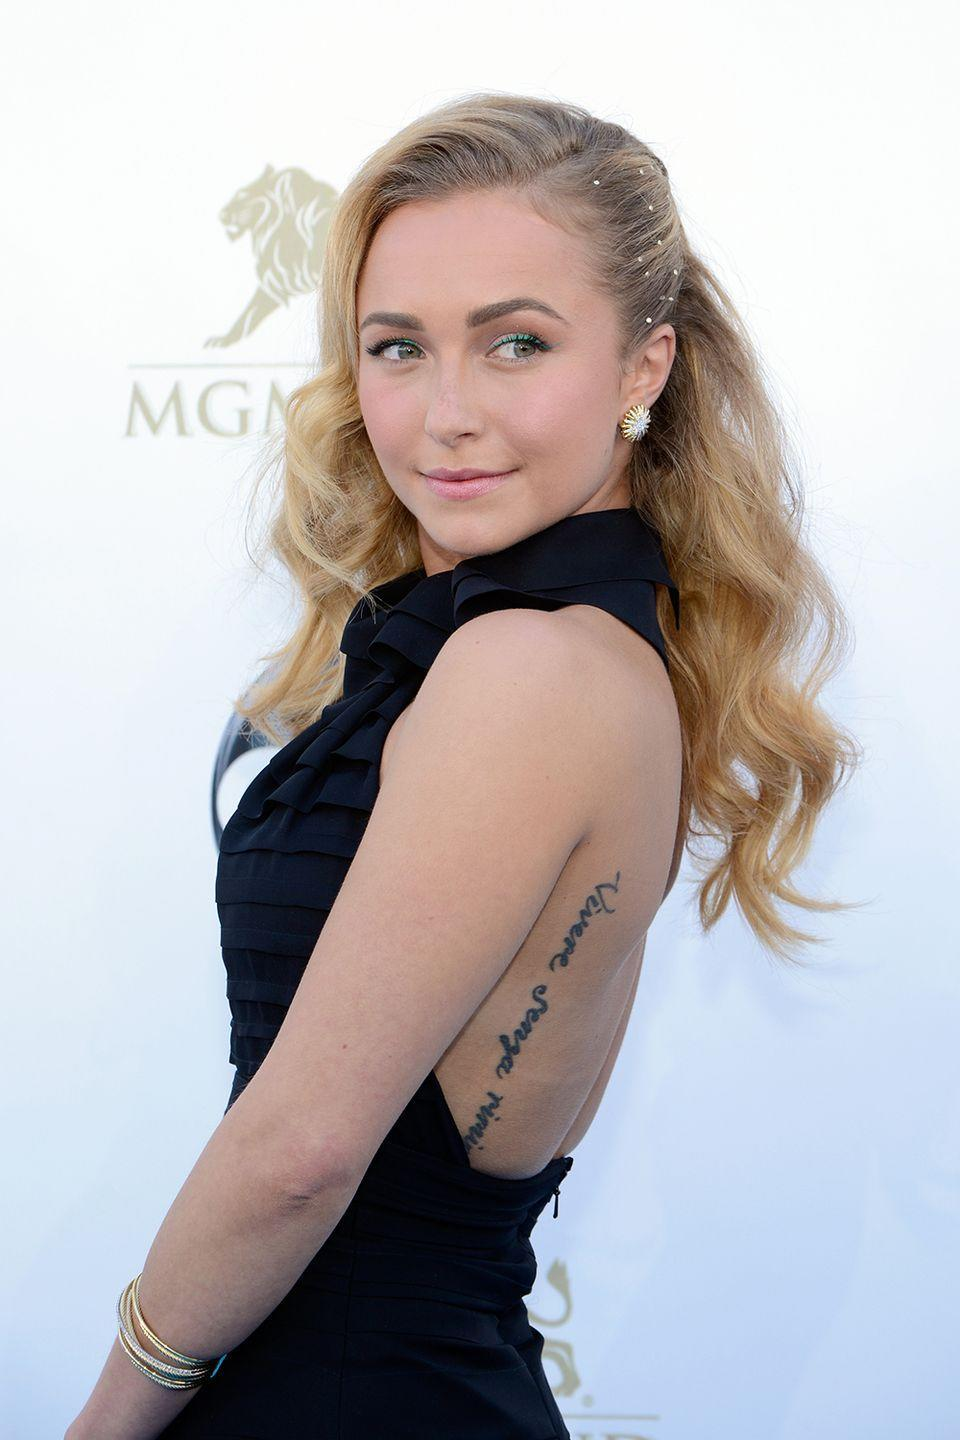 """<p>Hayden Panettiere's ink is ironic: She had the phrase, """"Live without regrets,"""" in Italian tattooed along the side of her back—unfortunately, she's got one regret now. In Italian the saying is, """"Vivere senza rimpianti,"""" but the last word was accidentally spelled, """"rimipianti.""""</p><p>""""It's misspelled, whatever,"""" she said <a href=""""http://www.dailymail.co.uk/tvshowbiz/article-2408535/Hayden-Panettiere-displays-partial-removal-misspelled-tattoo-Miami-beach-bikini.html"""" rel=""""nofollow noopener"""" target=""""_blank"""" data-ylk=""""slk:in an interview"""" class=""""link rapid-noclick-resp"""">in an interview</a>. """"I just put my own spin to it. Chances are I'll probably get it fixed, but that's why I love having it on my back because I don't get bored of it.""""</p>"""